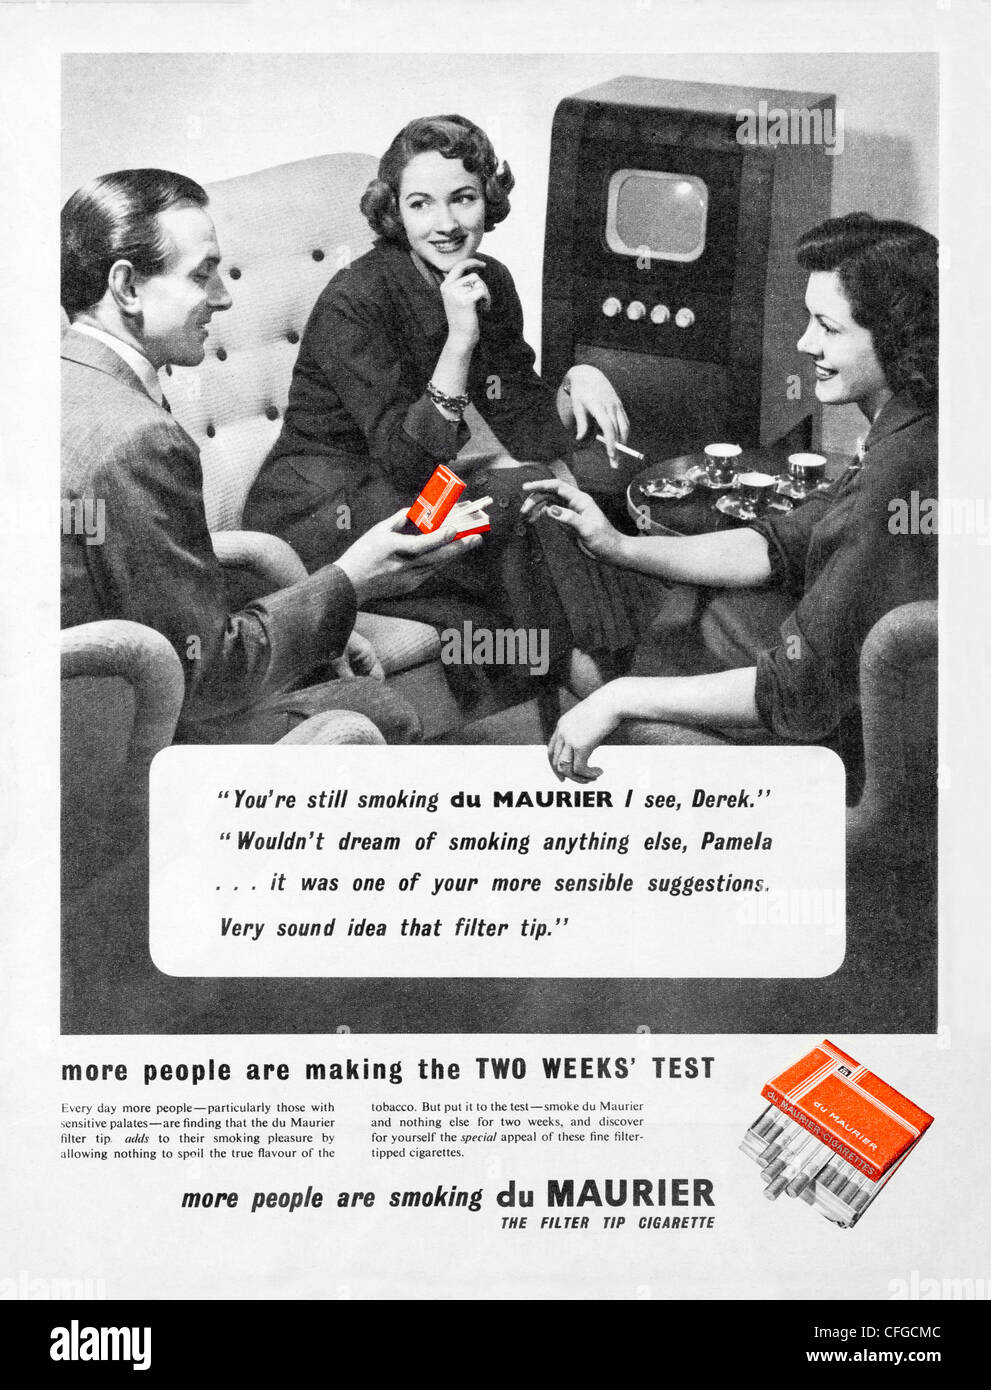 Du Maurier cigarettes advert from 1954 - Stock Image